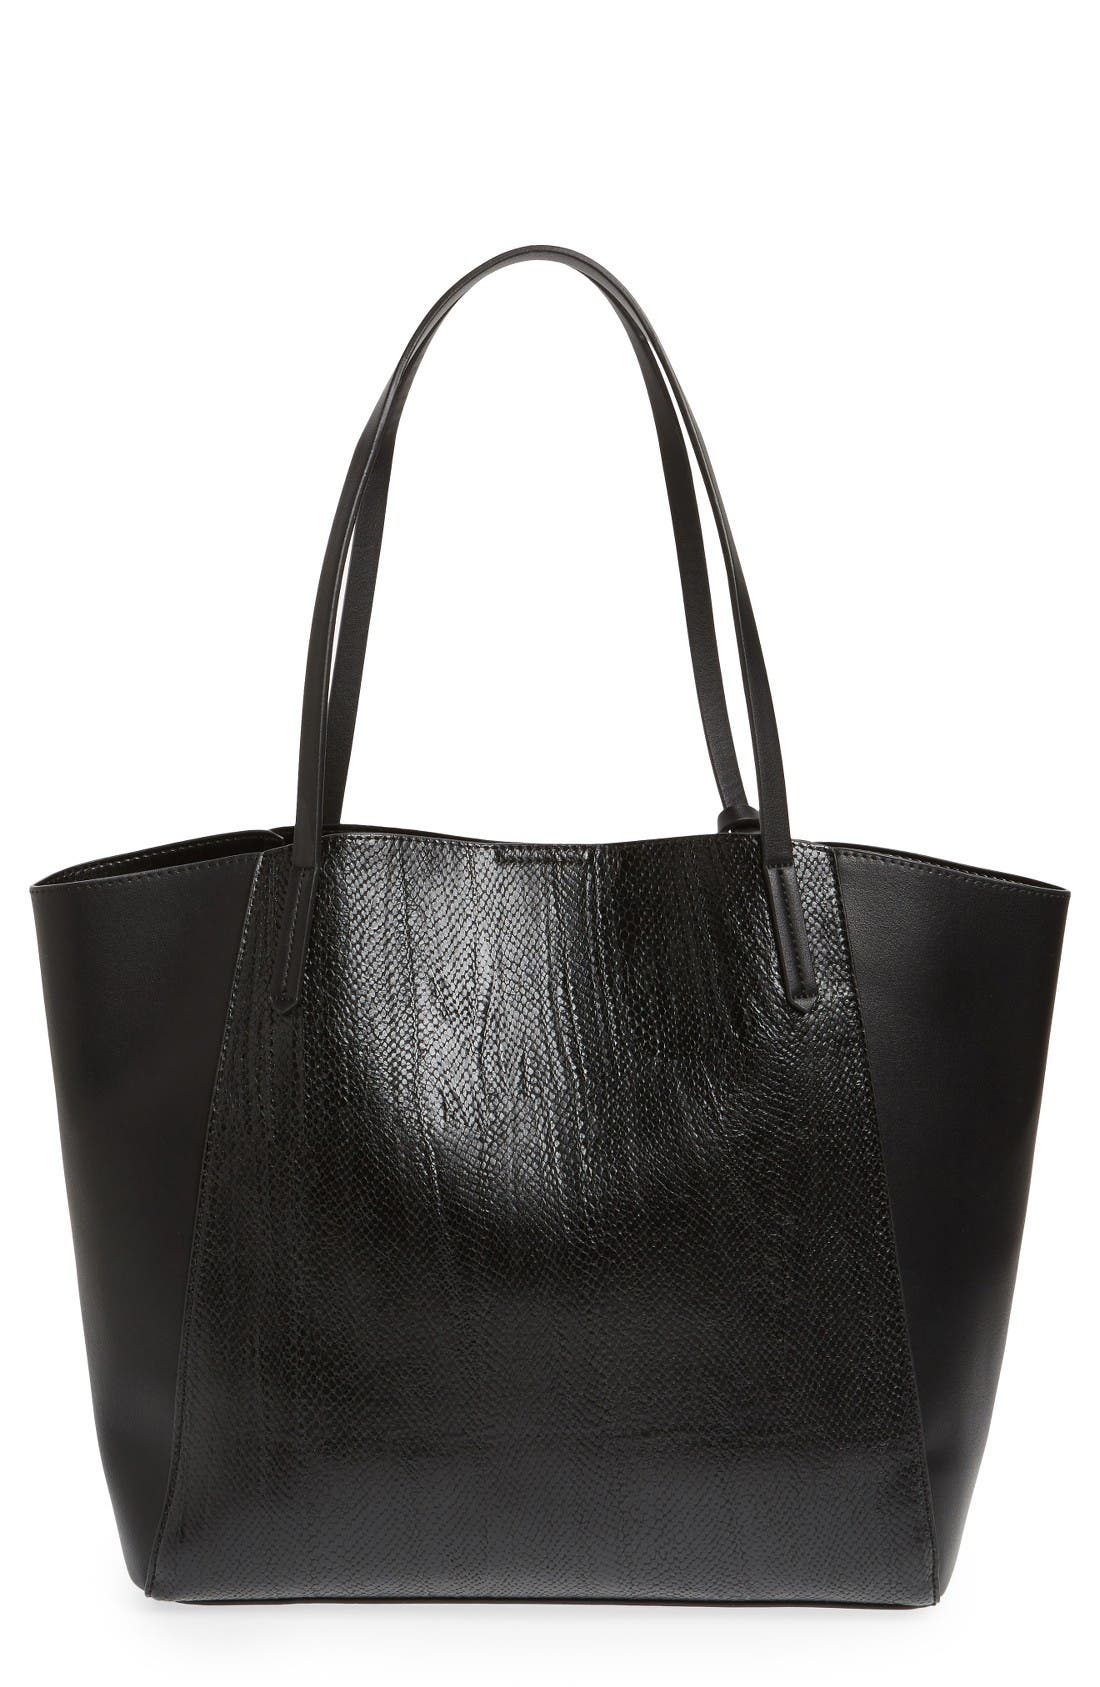 Alternate Image 1 Selected - BP. Colorblock Faux Leather Tote